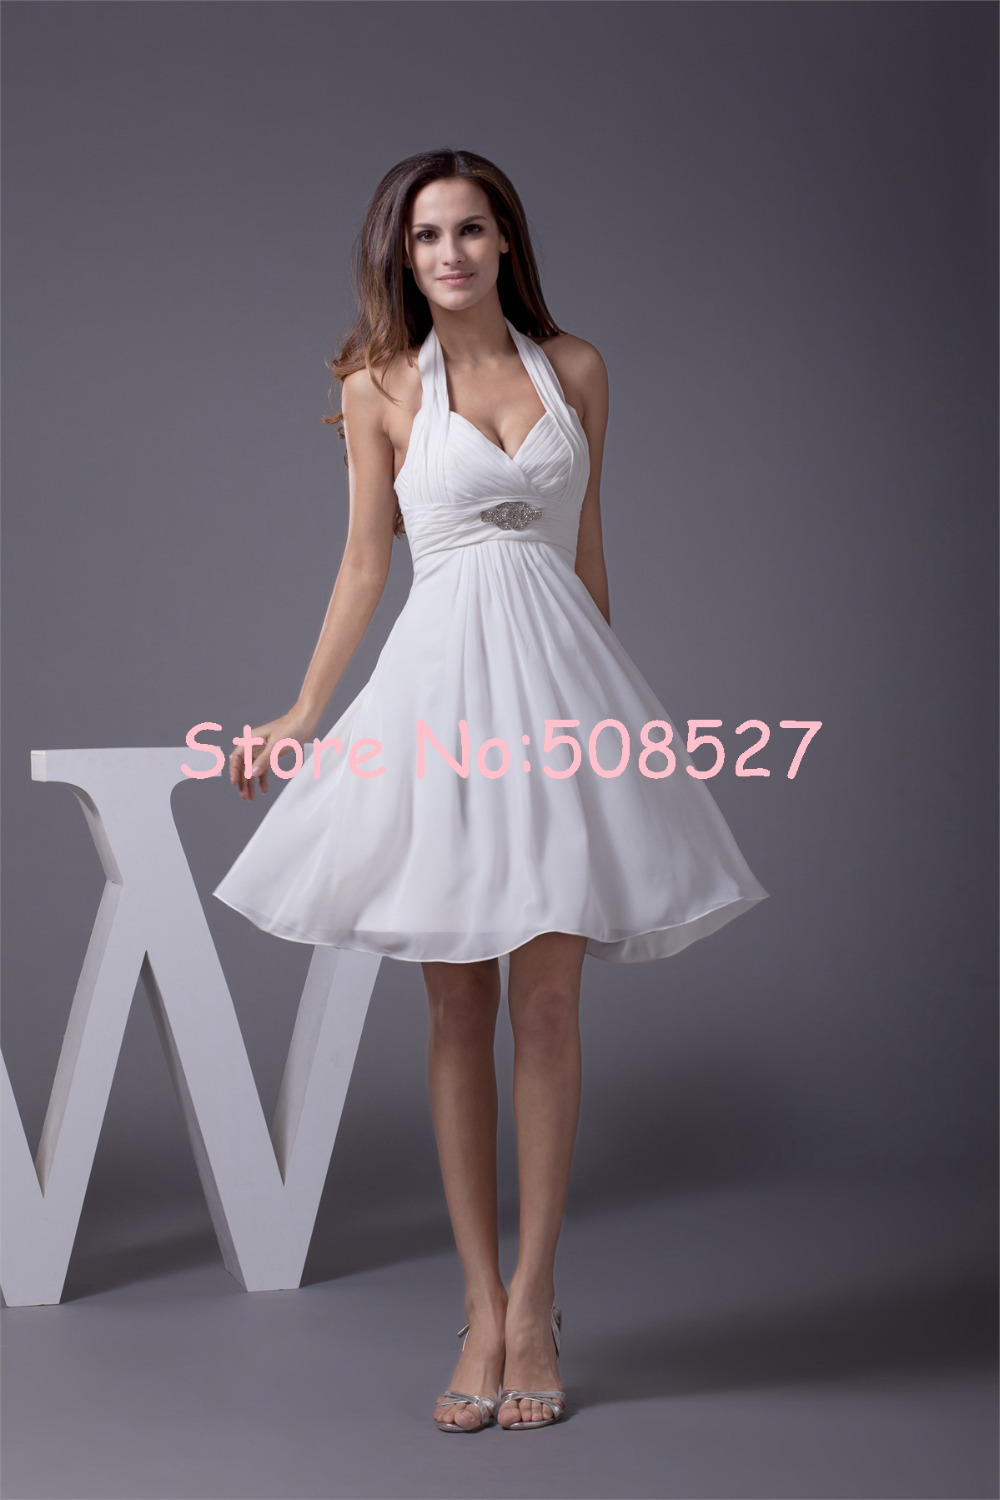 Compare Prices On White Dama Dresses Online Shopping Buy